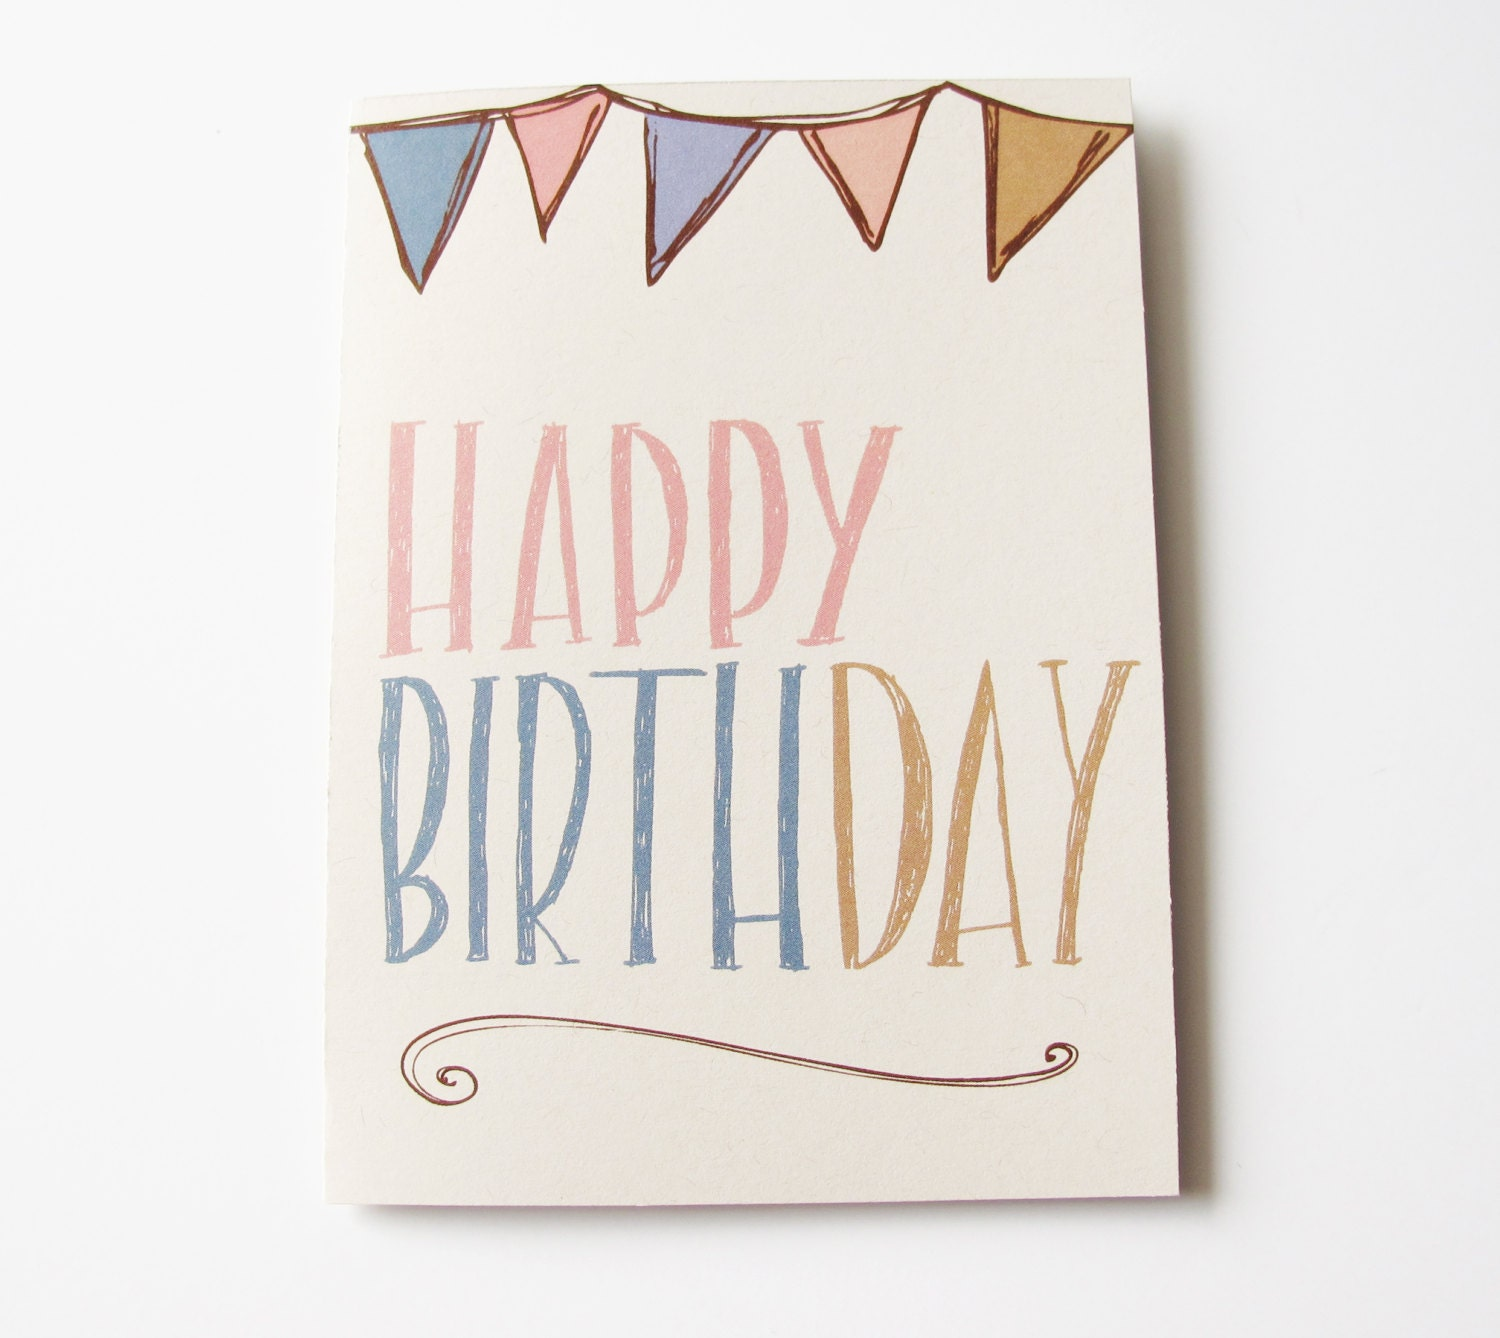 How To Draw A Birthday Card securitas security officer sample – How to Draw a Birthday Card